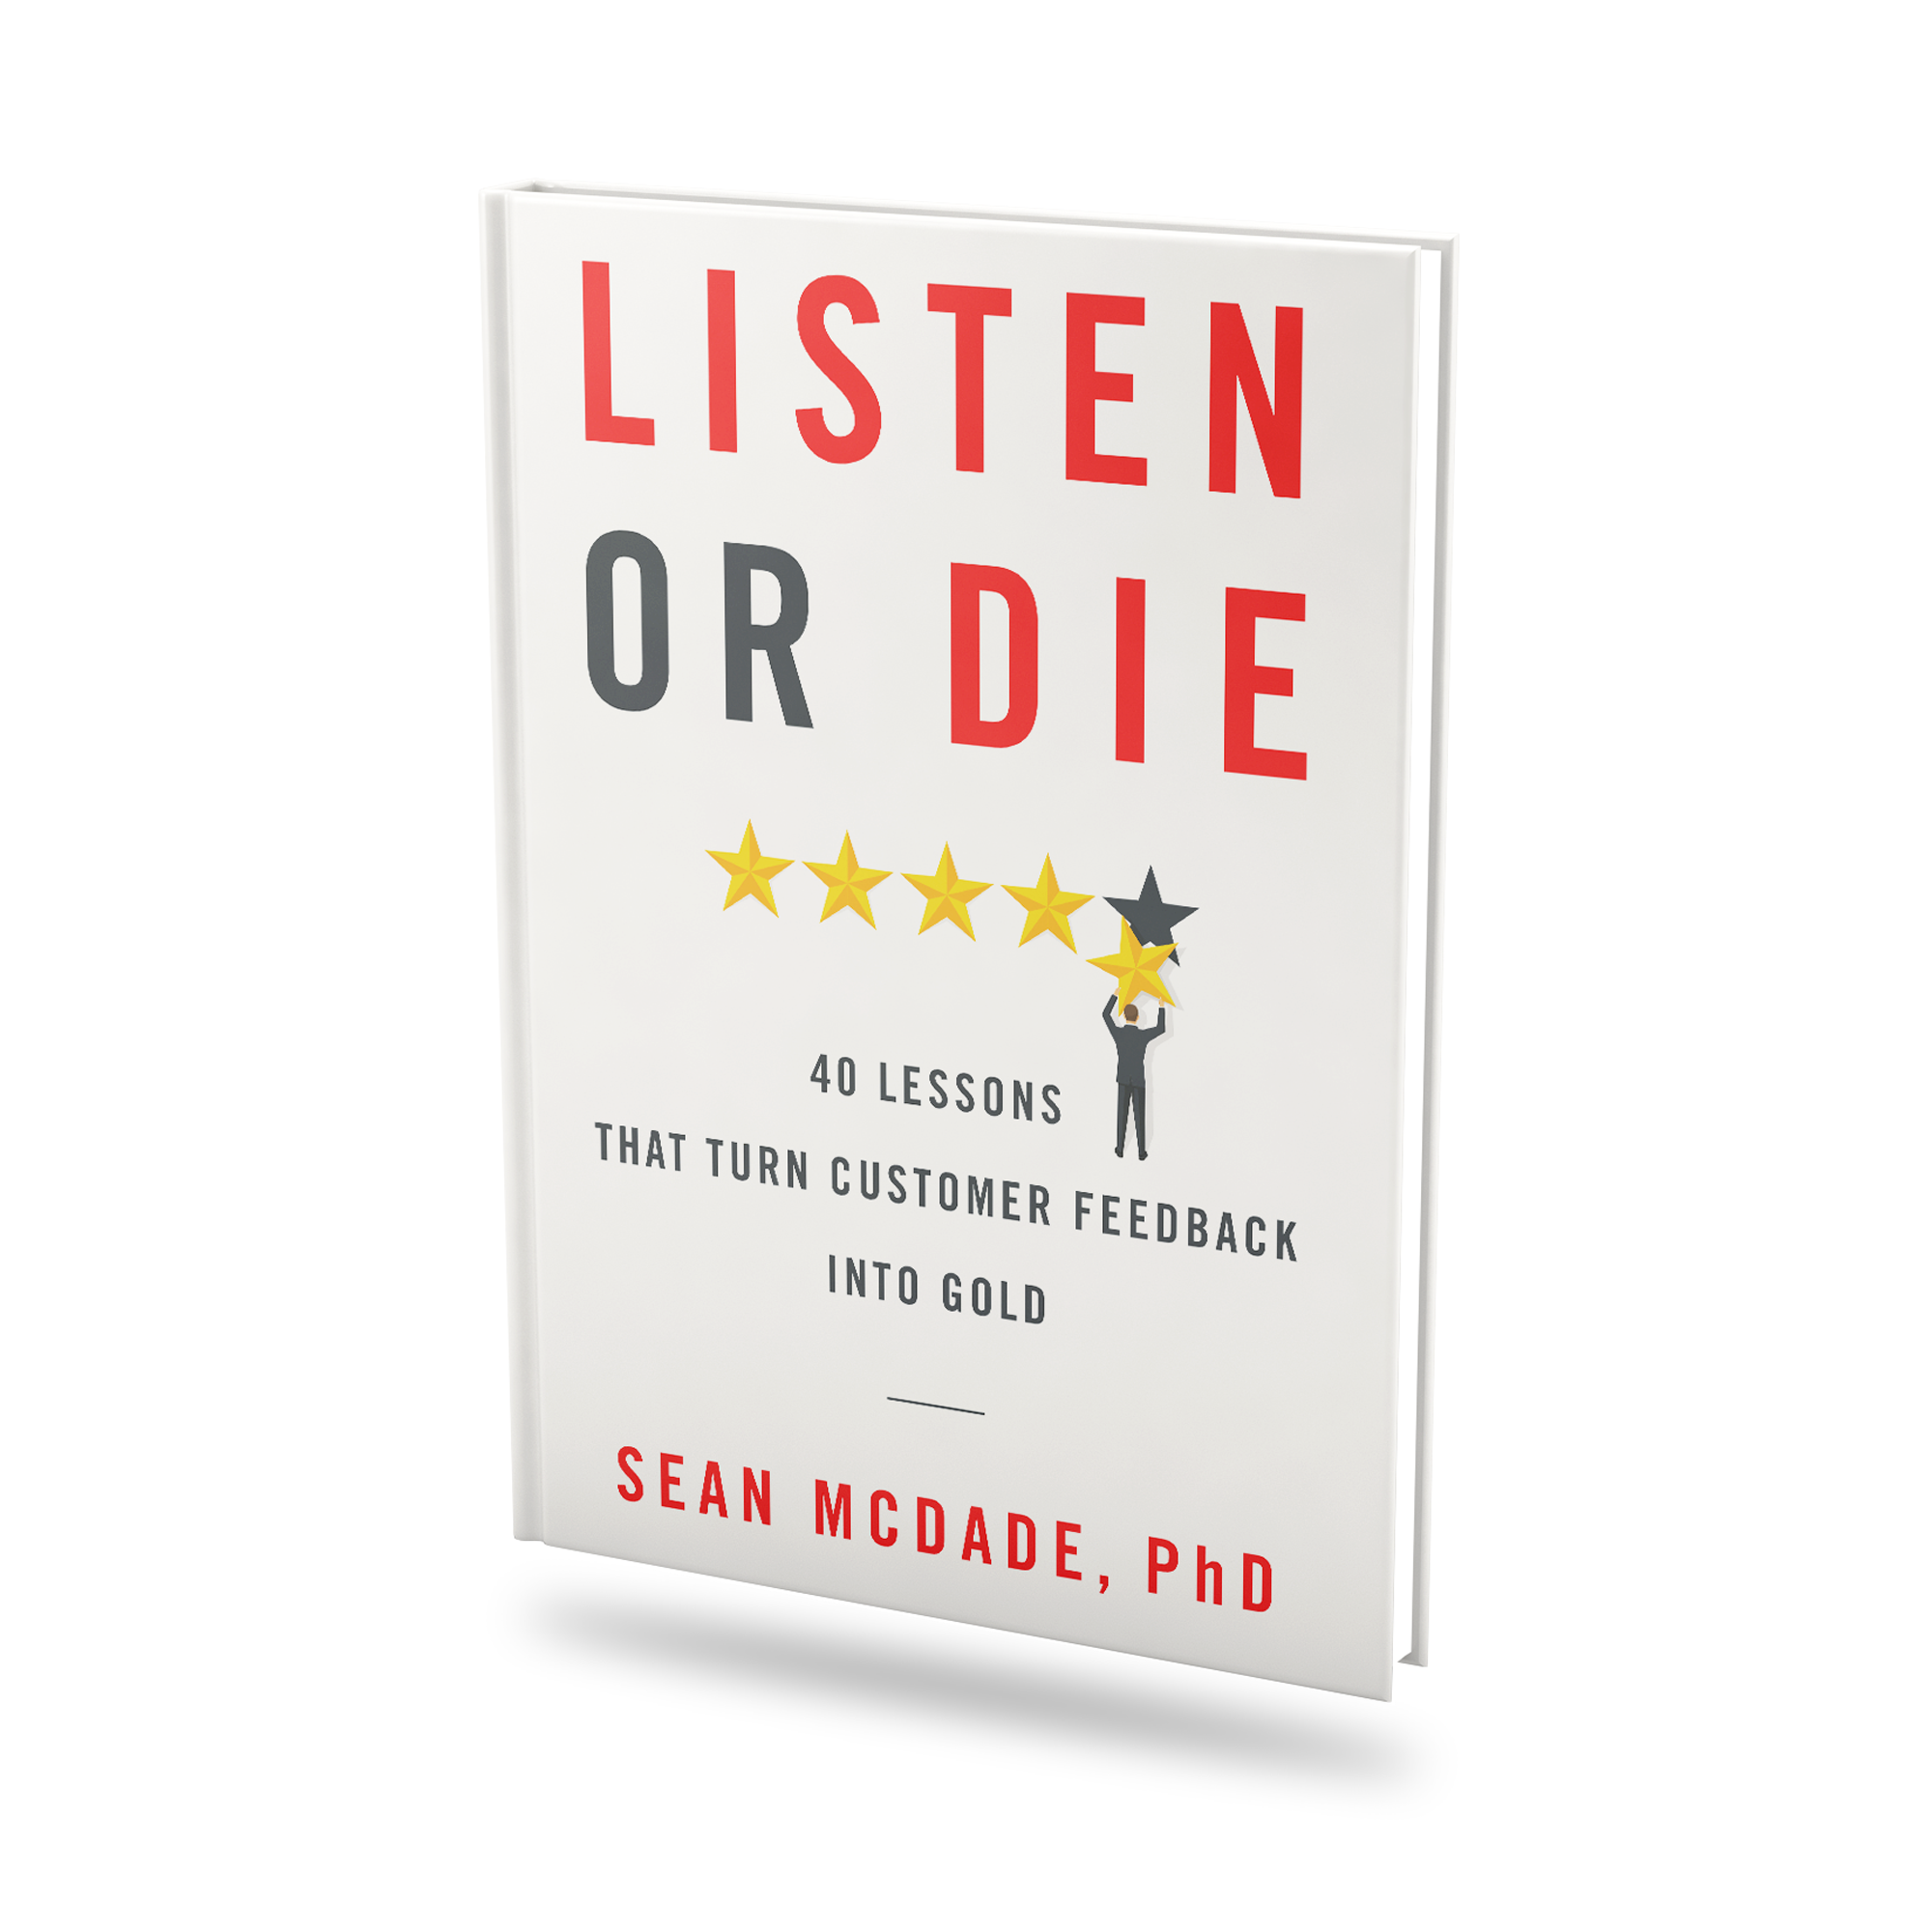 Listen or Die: 40 Lessons That Turn Customer Feedback Into Gold